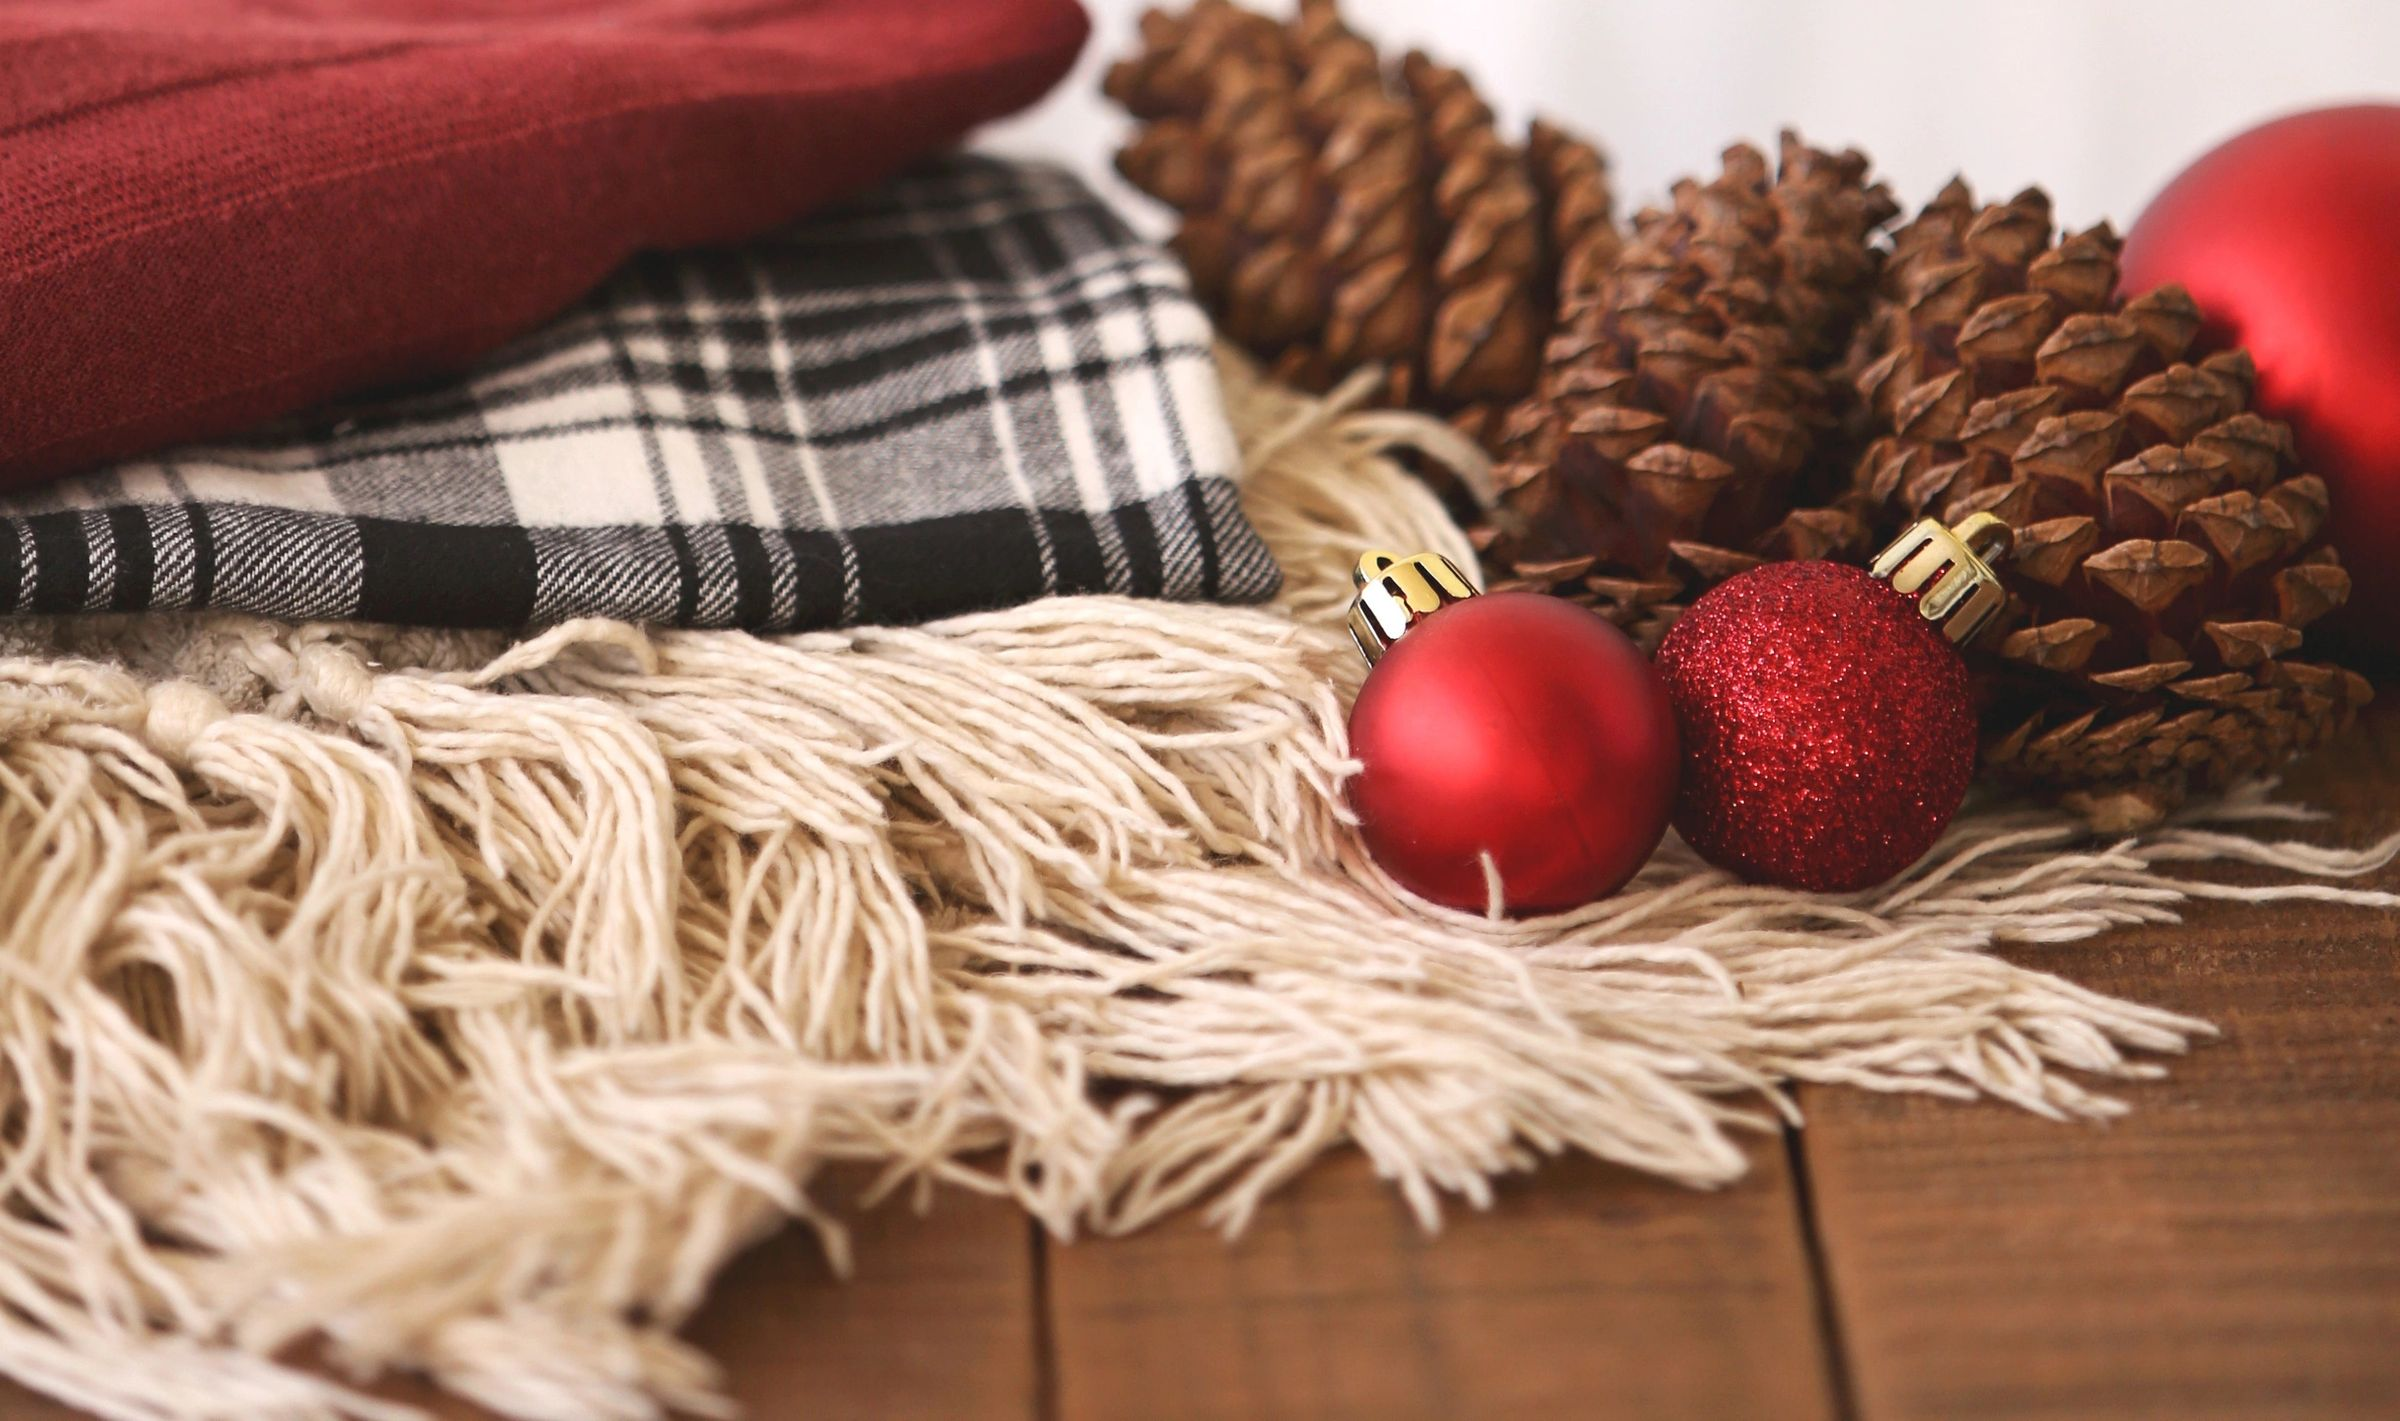 Low Back Pain during the Holidays